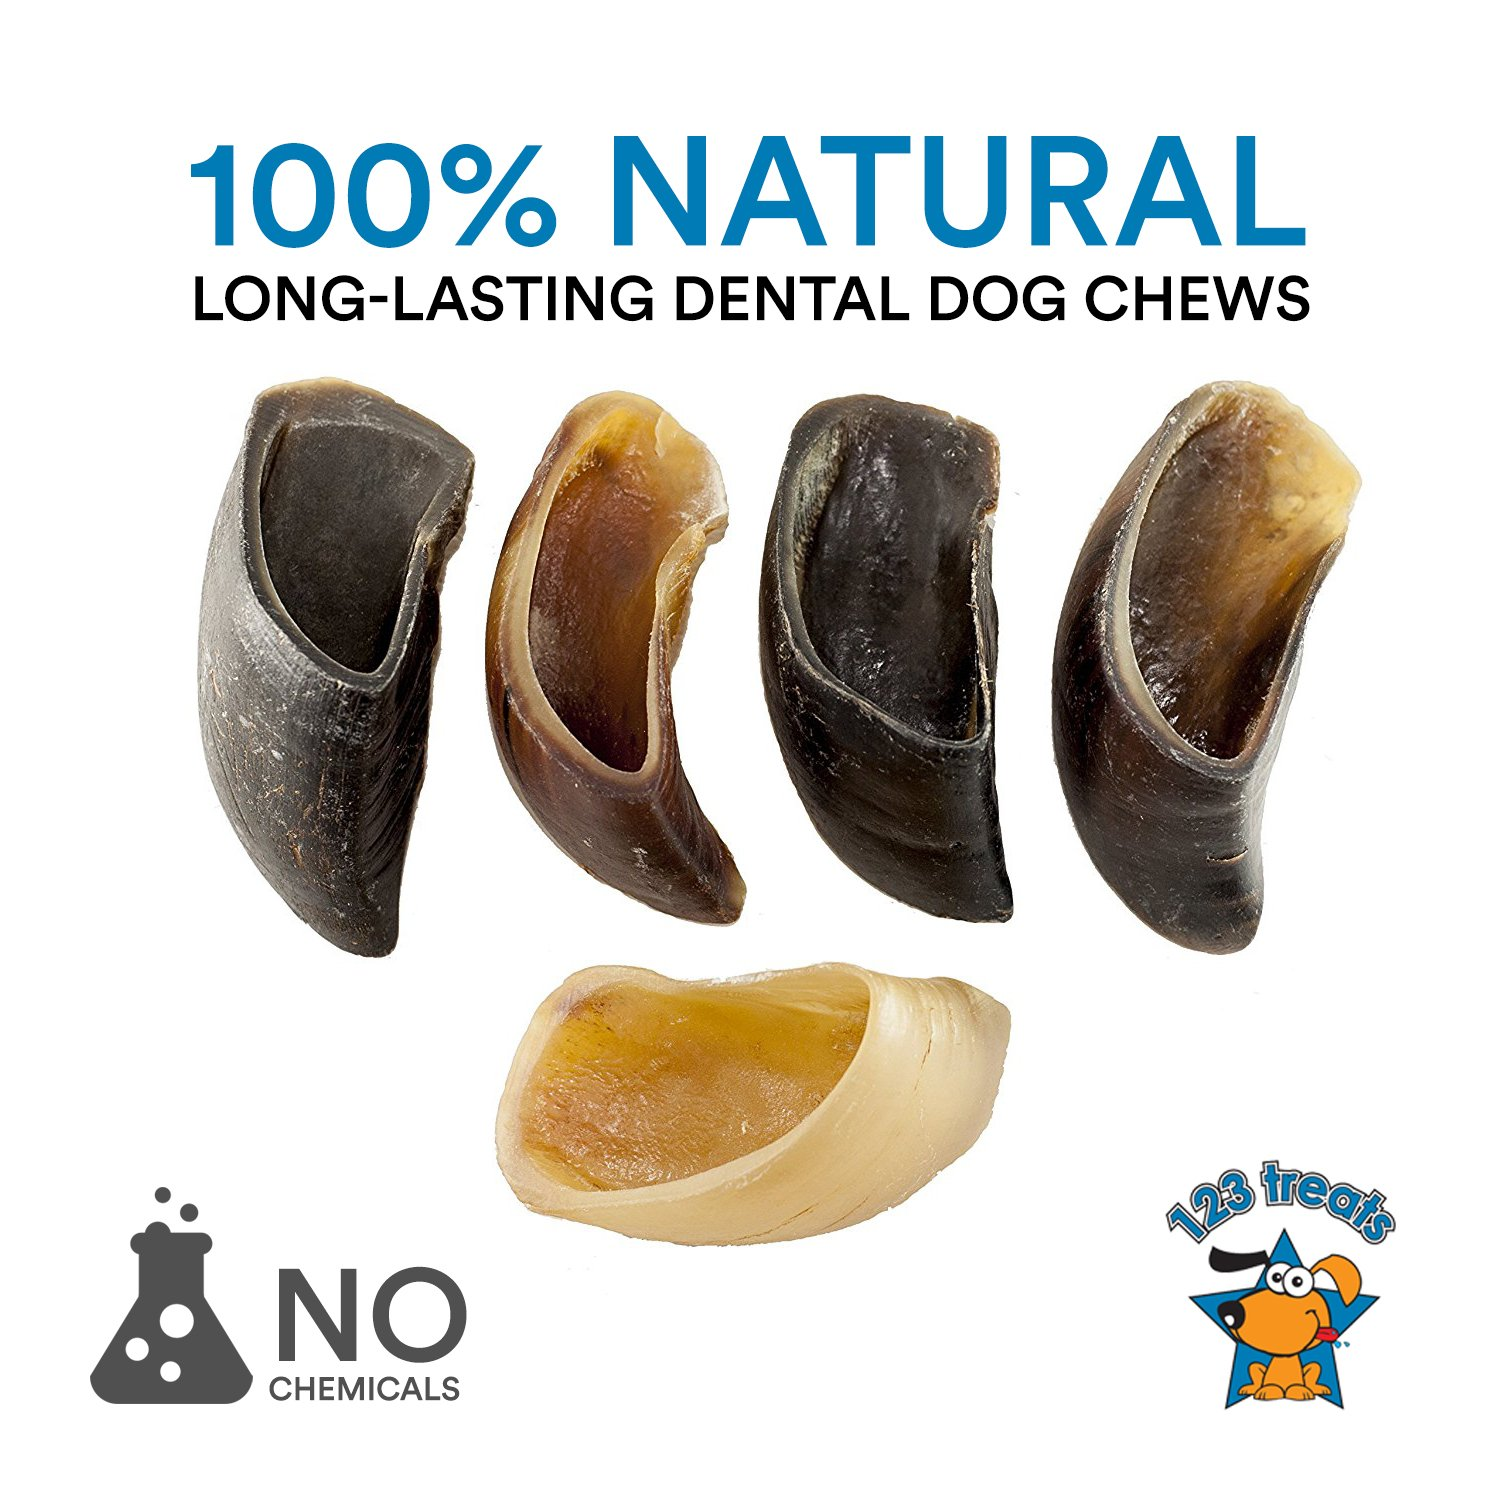 123 Treats | Hooves for Dogs (25 Count) 100% Natural Long-lasting Dental Dog Chews Made from Beef Hoof | From Free Range, Grass Fed Cattle with NO additives, coloring or chemicals by 123 Treats (Image #2)